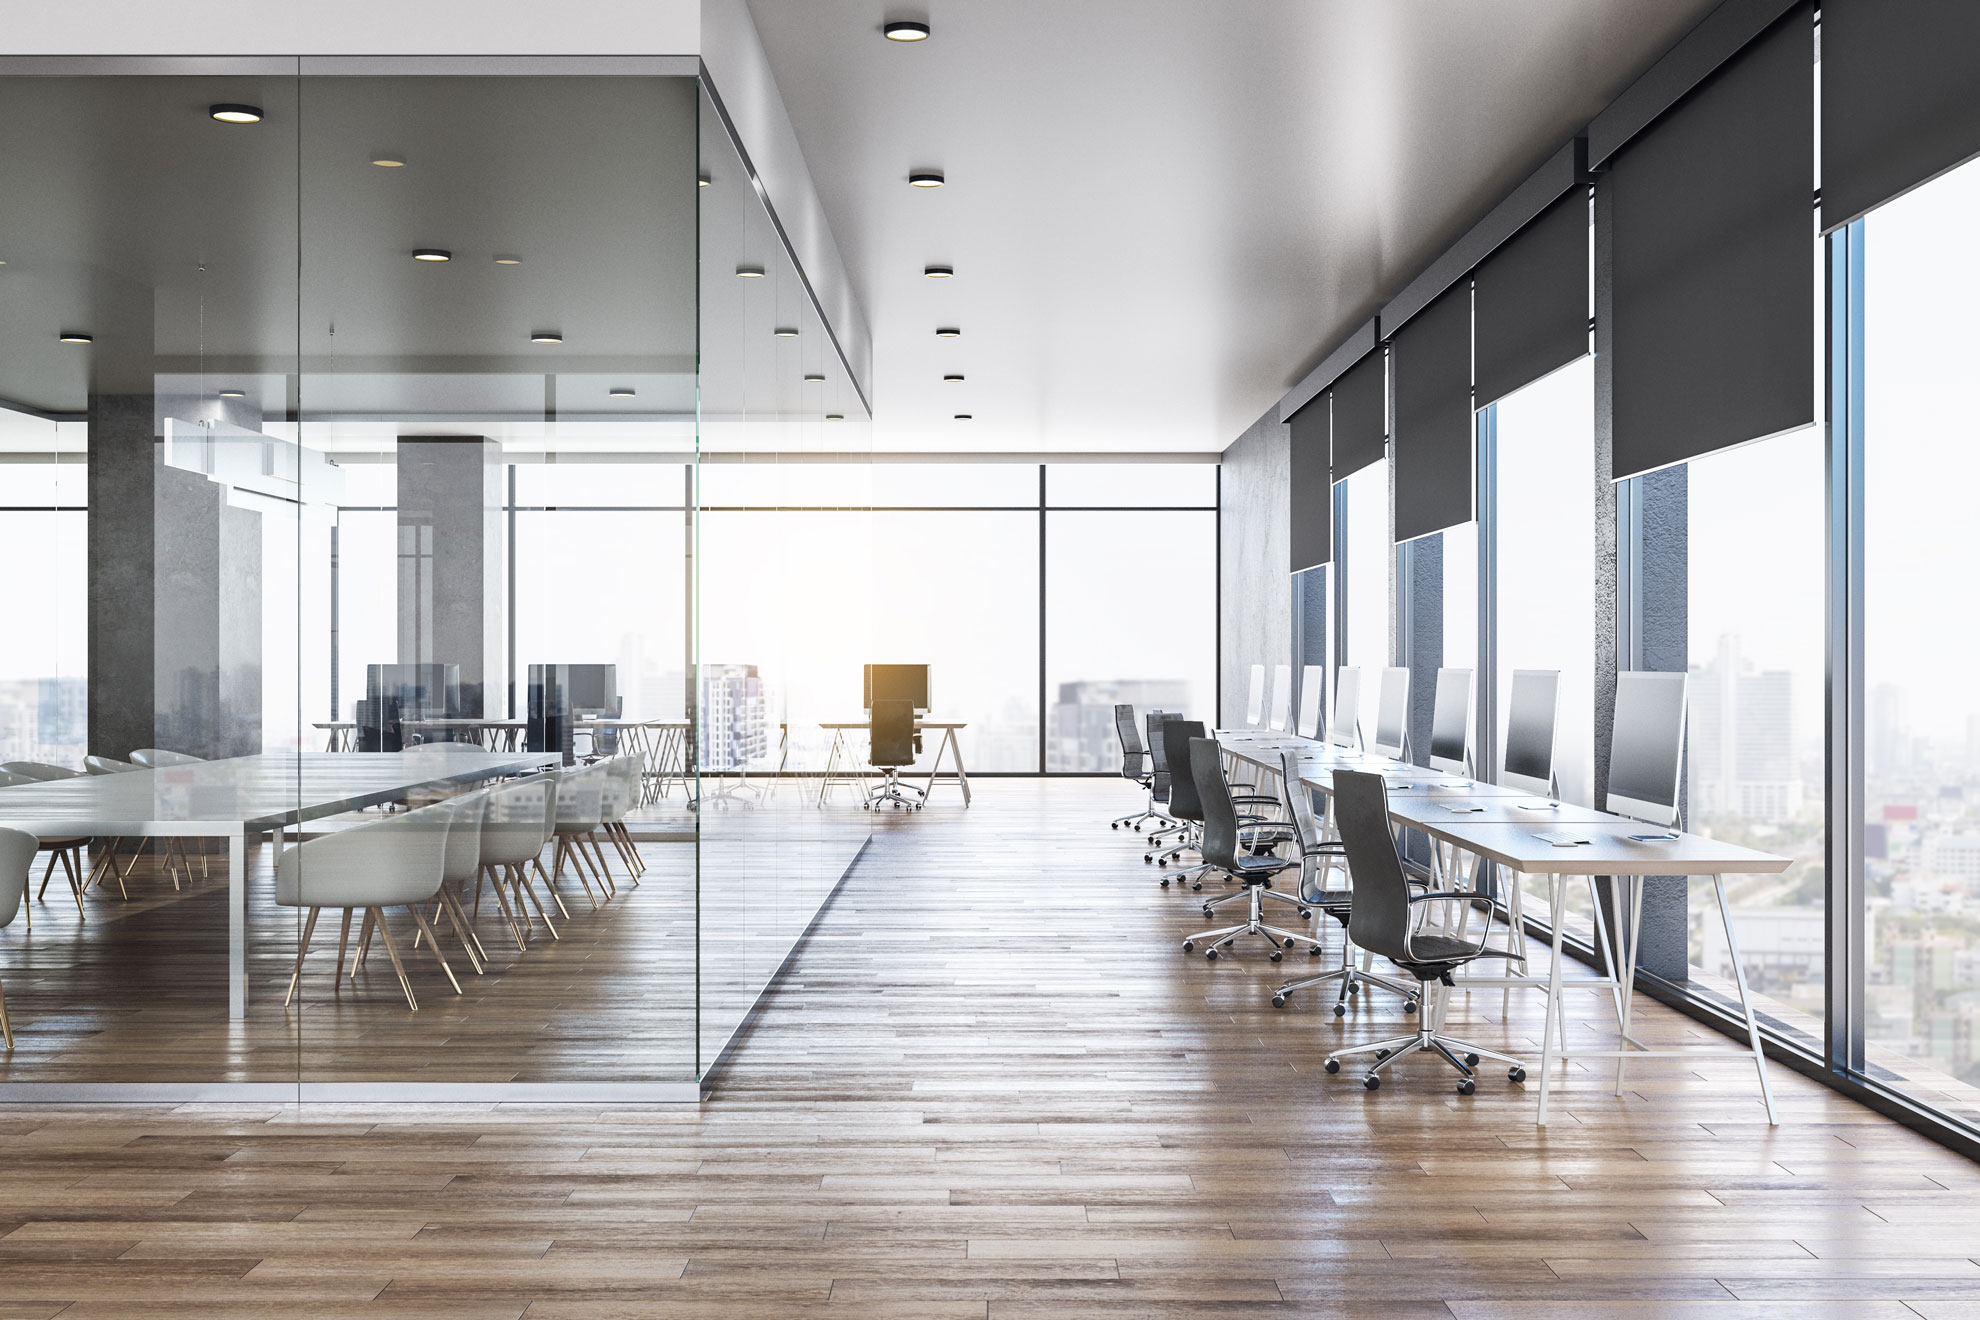 How The View From Your Conference Room Affects Your Day